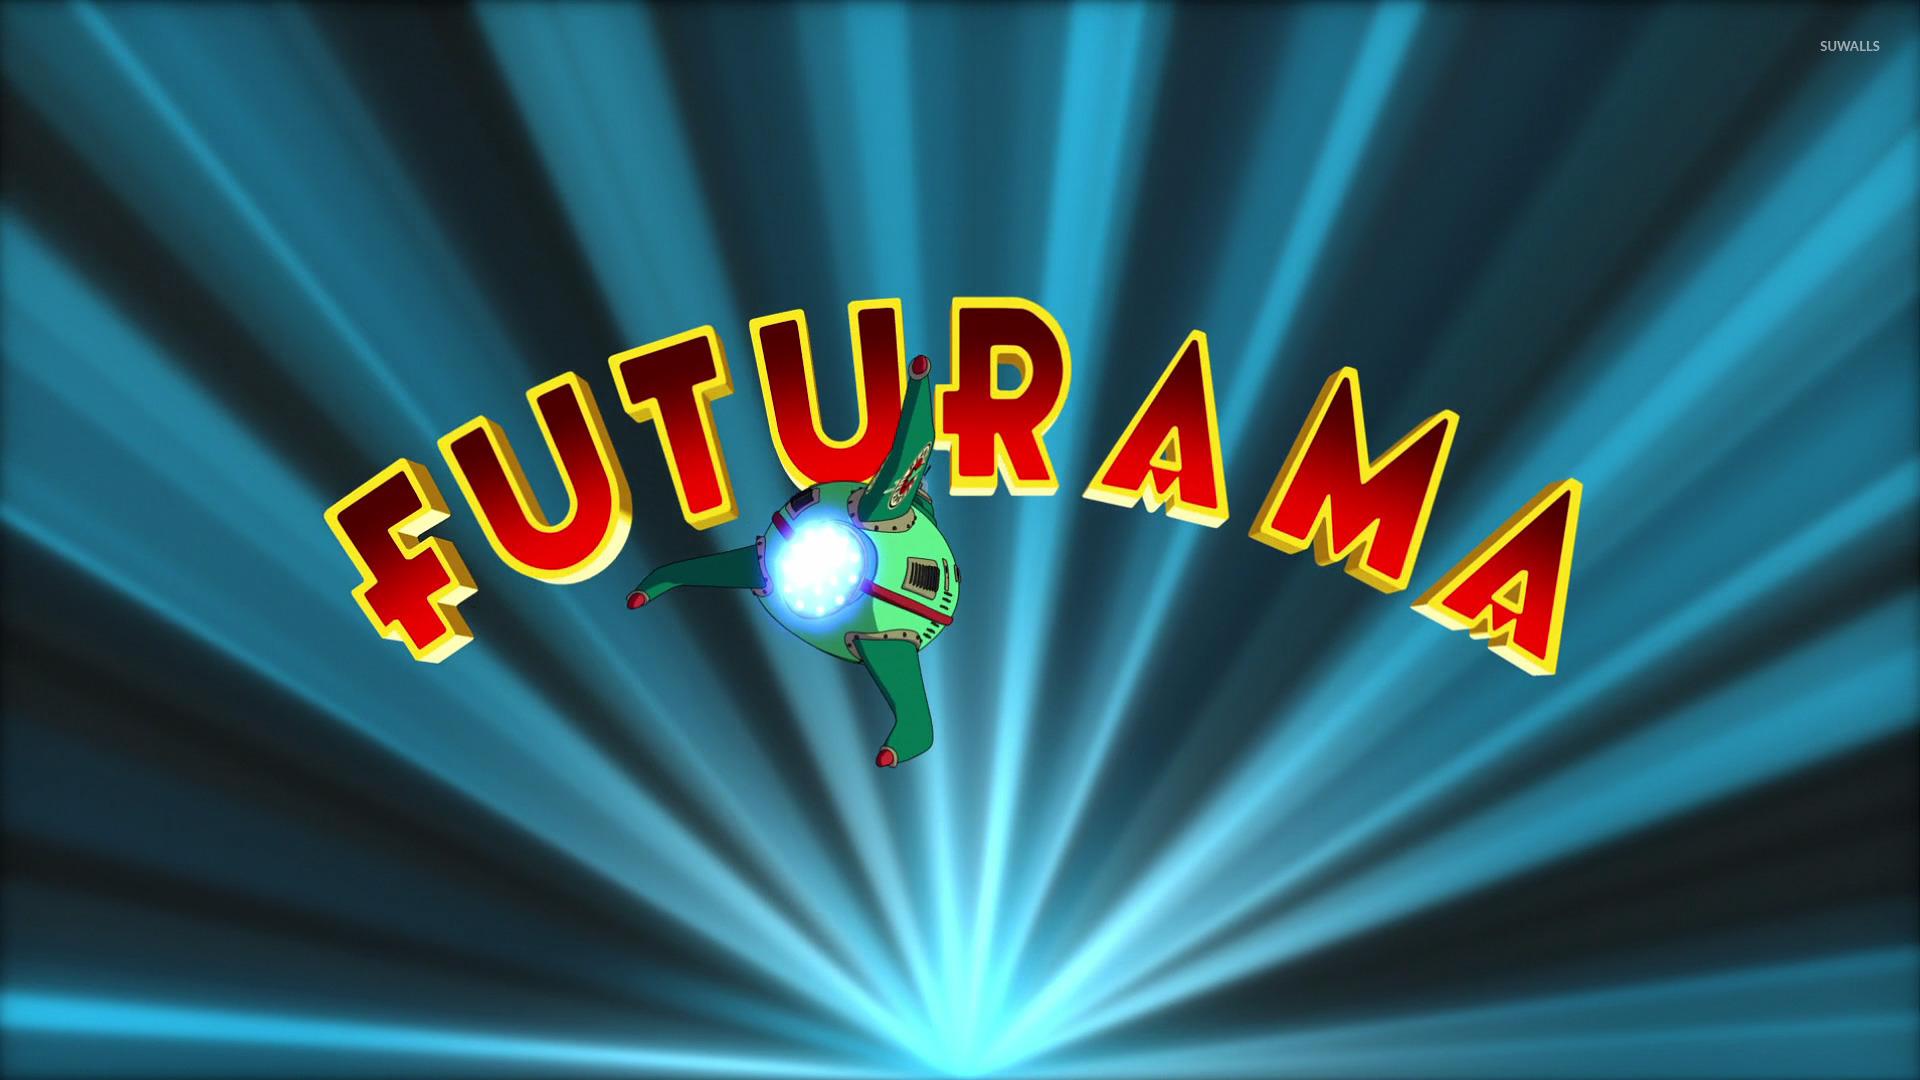 Free Download Wallpapers Of Friendship Quotes Futurama 5 Wallpaper Cartoon Wallpapers 9979